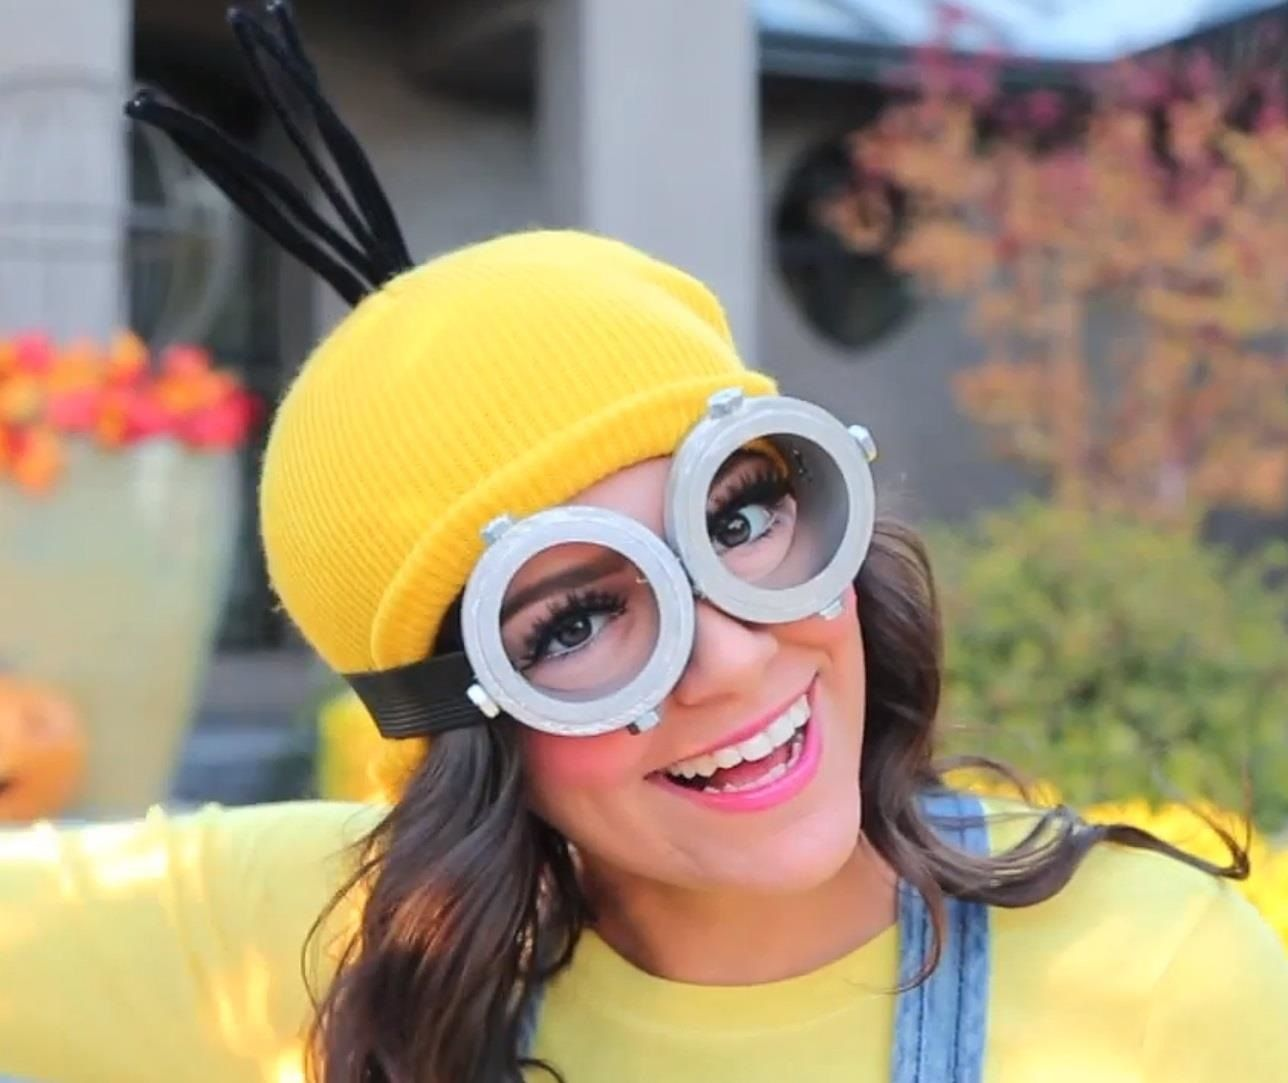 612f5a8c176 5 Awesome DIY Minion Halloween Costumes from  Despicable Me  « Halloween  Ideas